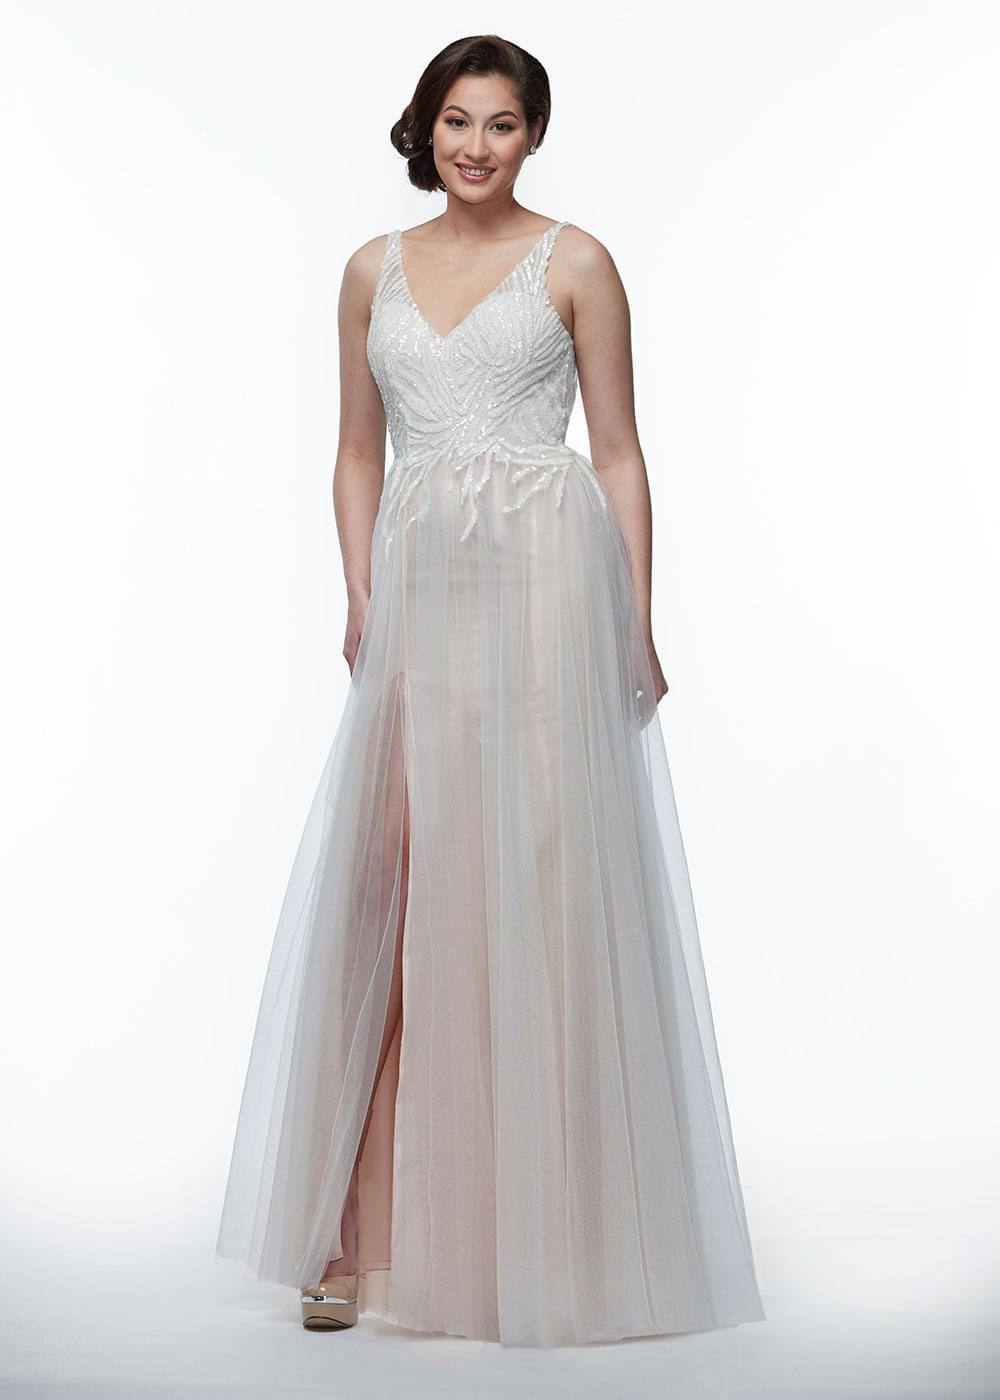 TH-80092 TH Bridesmaid Dresses By Ashdon